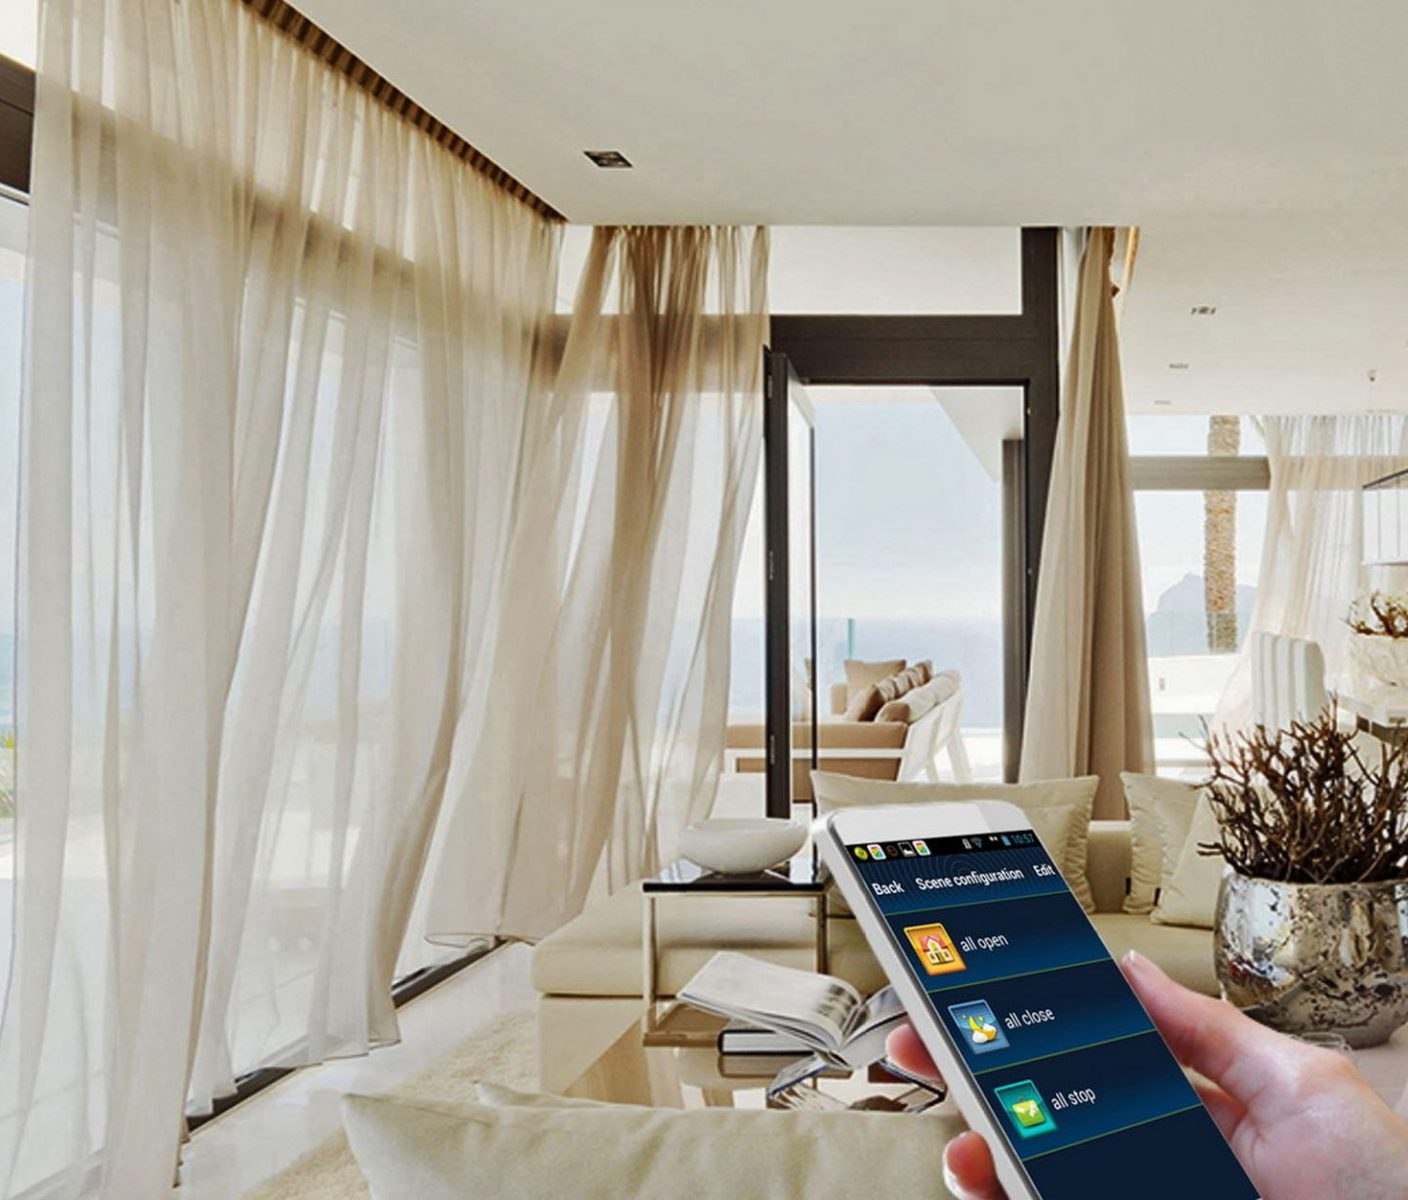 Person controlling large curtains with smart phone.